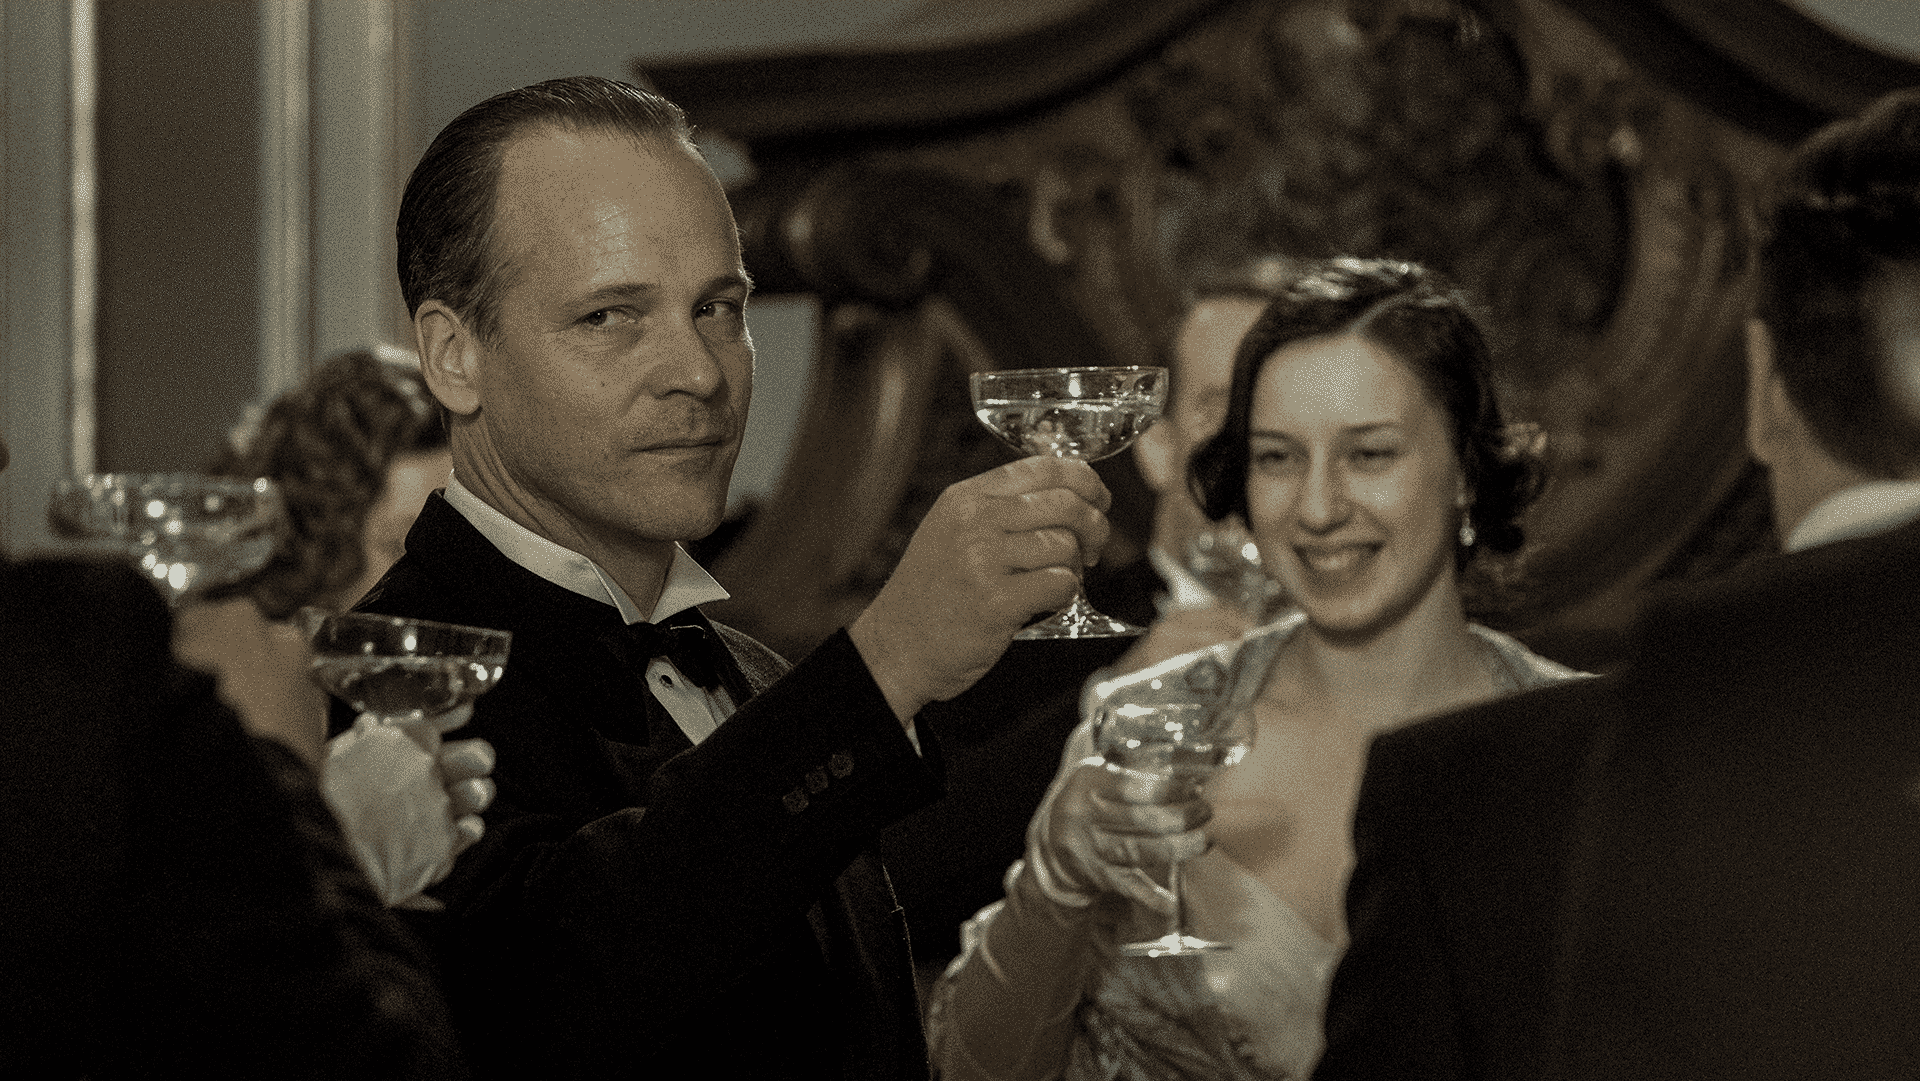 Peter Sarsgaard as Walter Duranty.